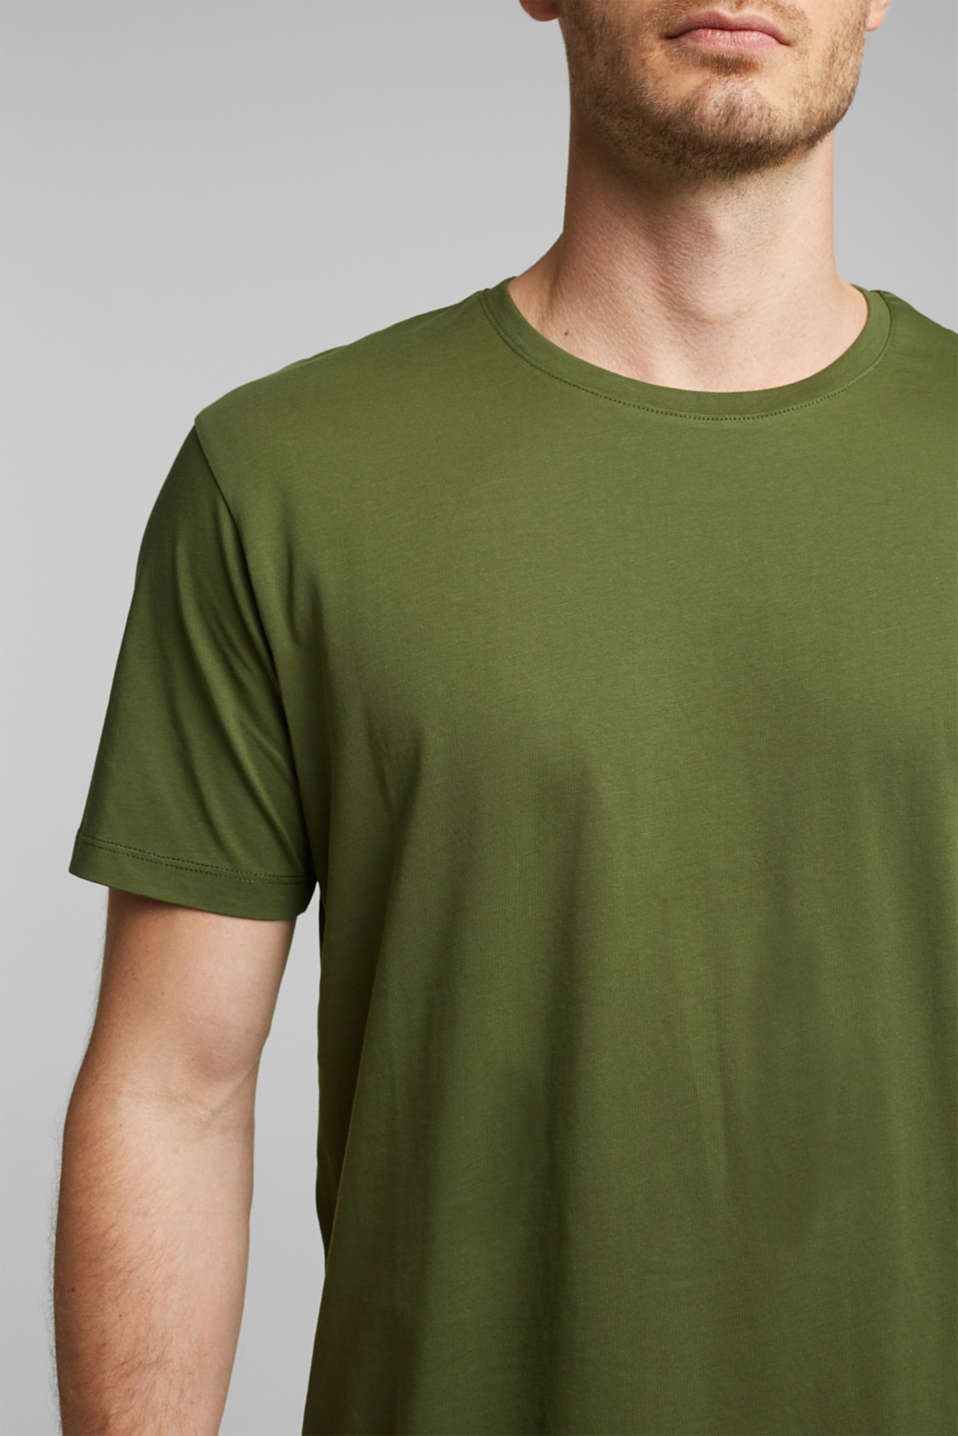 Jersey T-shirt in 100% cotton, KHAKI GREEN, detail image number 1